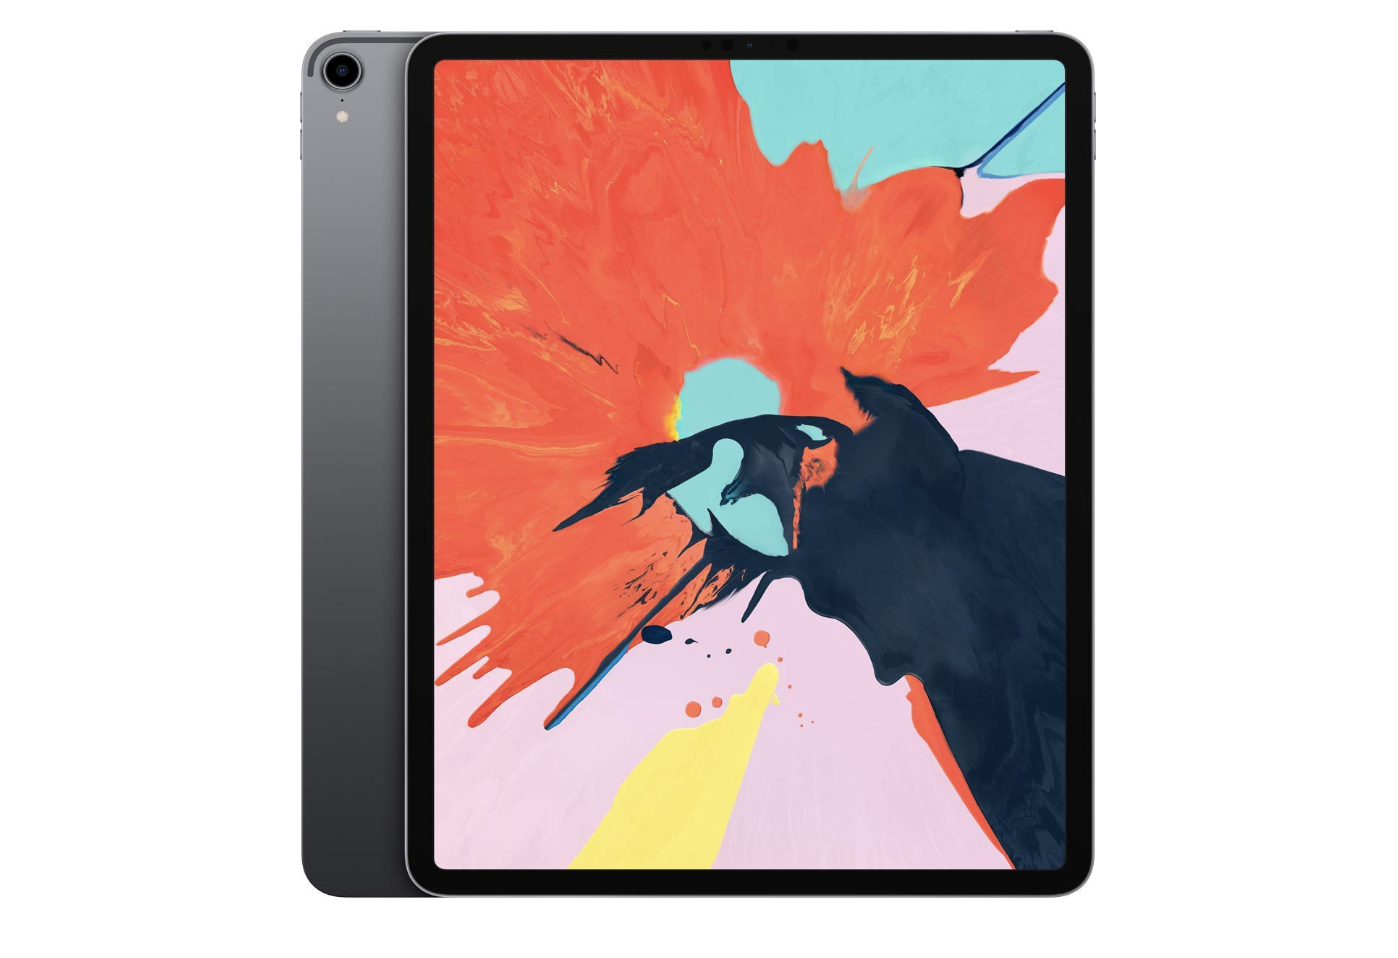 Apple iPad Pro (12.9-inch, Wi-Fi, 256GB) - (Latest Model)